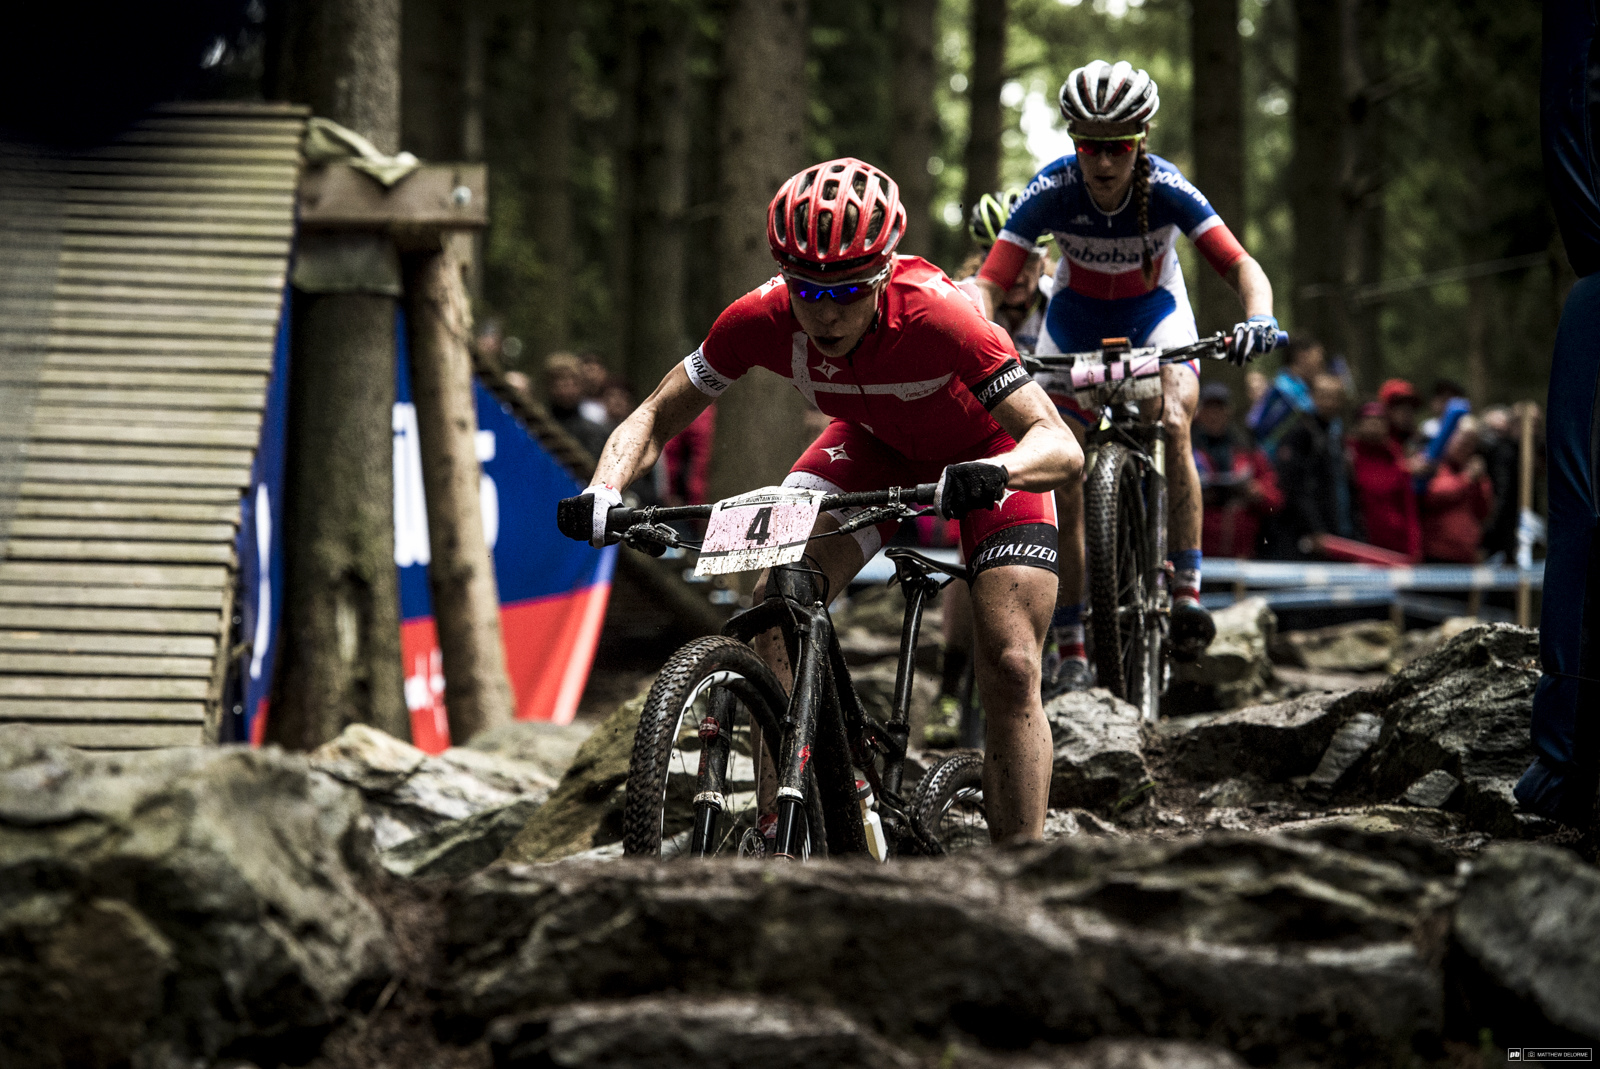 Annika Langvad finding her rhythm in the Mitas rock garden. She finished fifth.